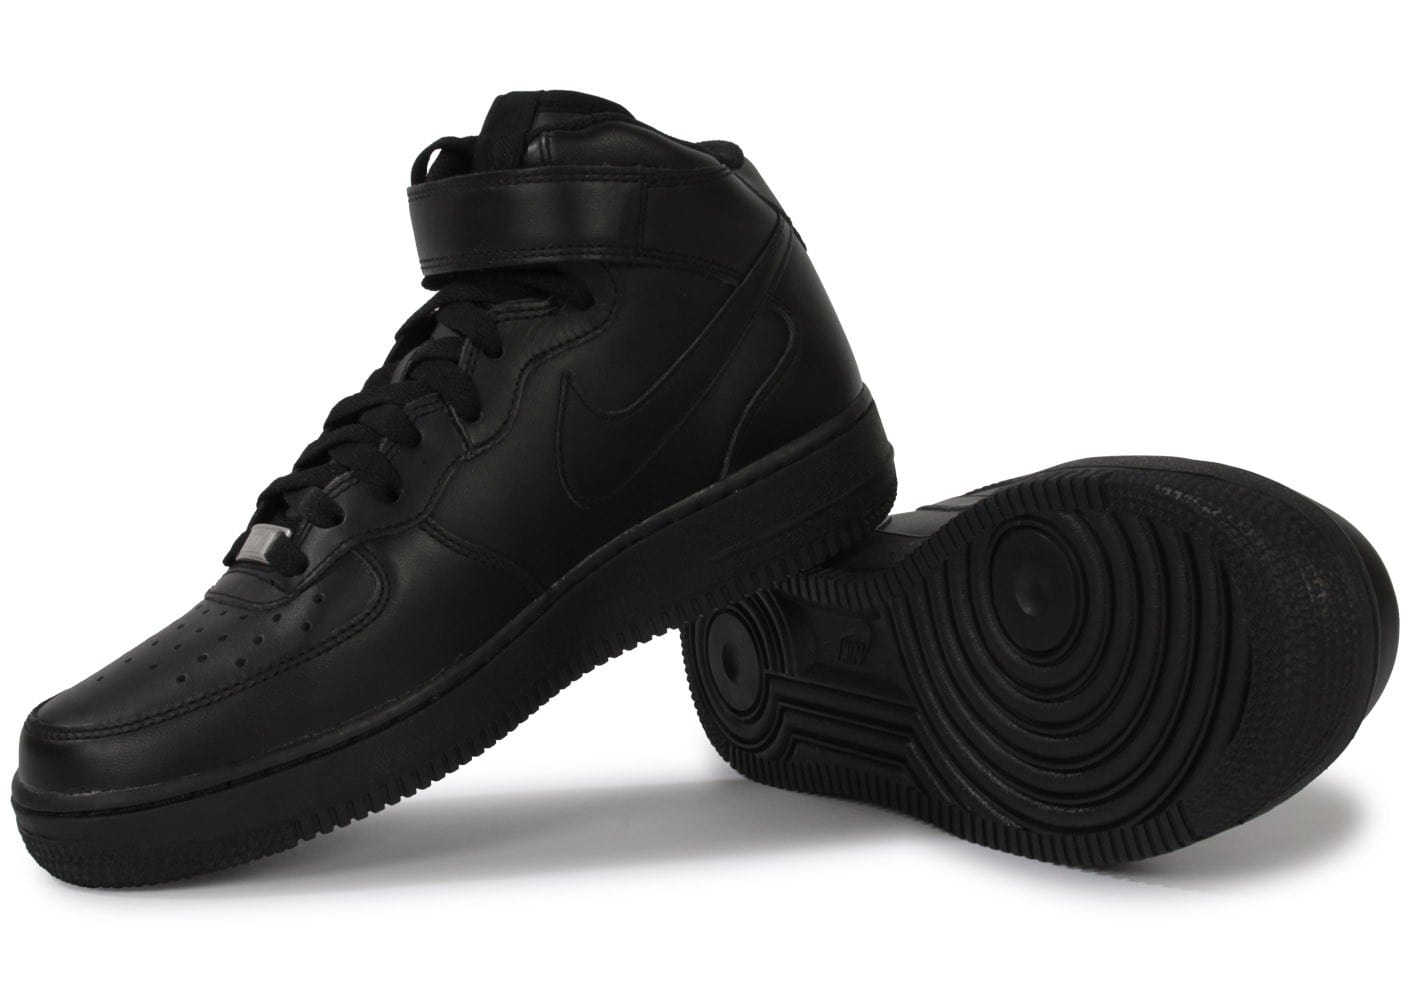 Nike Air Force 1 Mid 07 Noire - Chaussures Homme - Chausport